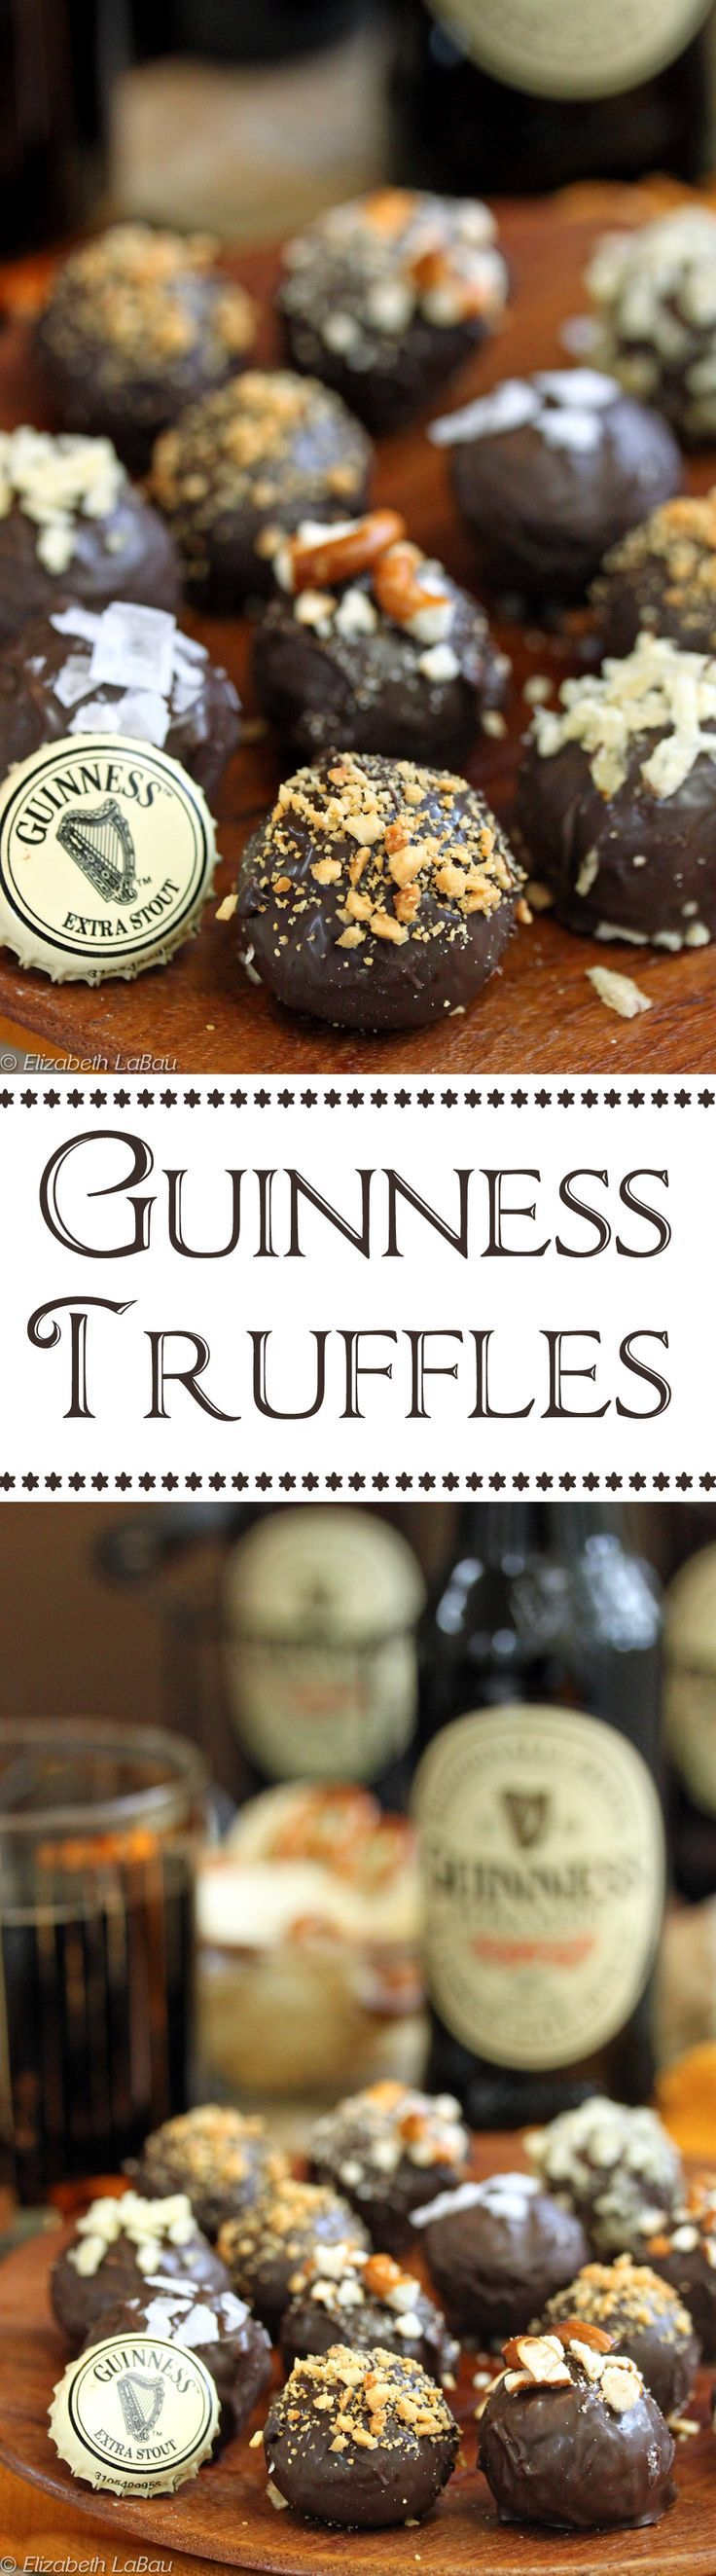 Guinness Truffles - rich, luscious homemade chocolate truffles with Guinness mixed right in. Perfect for any beer lover! | From candy.about.com http://candy.about.comod/chocolatetrufflerecipes/r/Guinness-Truffles.htm?utm_content=bufferaf024&utm_medium=social&utm_source=pinterest.com&utm_campaign=buffer